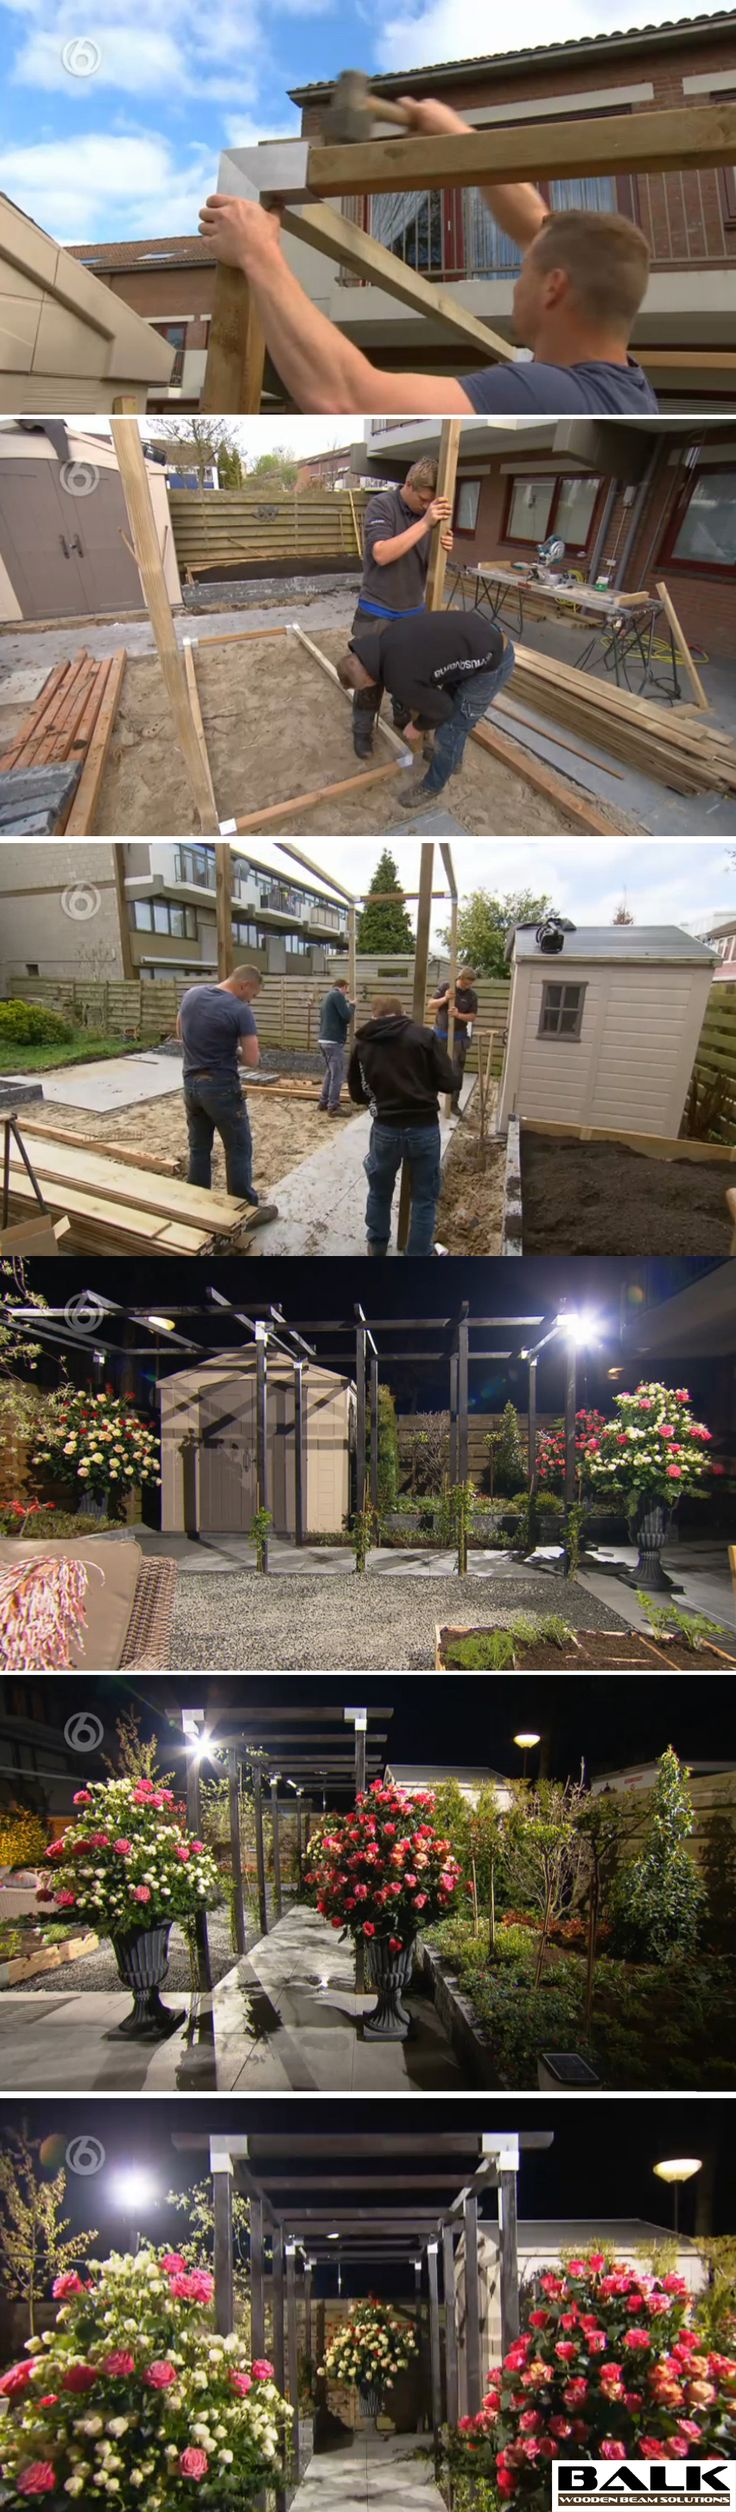 Pergola construction made with BALK connectors / couplings / joints / fittings / corner pieces for wooden beams.  This episode is in Dutch. http://www.sbs6.nl/programmas/robs-grote-tuinverbouwing/videos/zcnx5fqAoV6/robs-grote-tuinverbouwing-aflevering-34